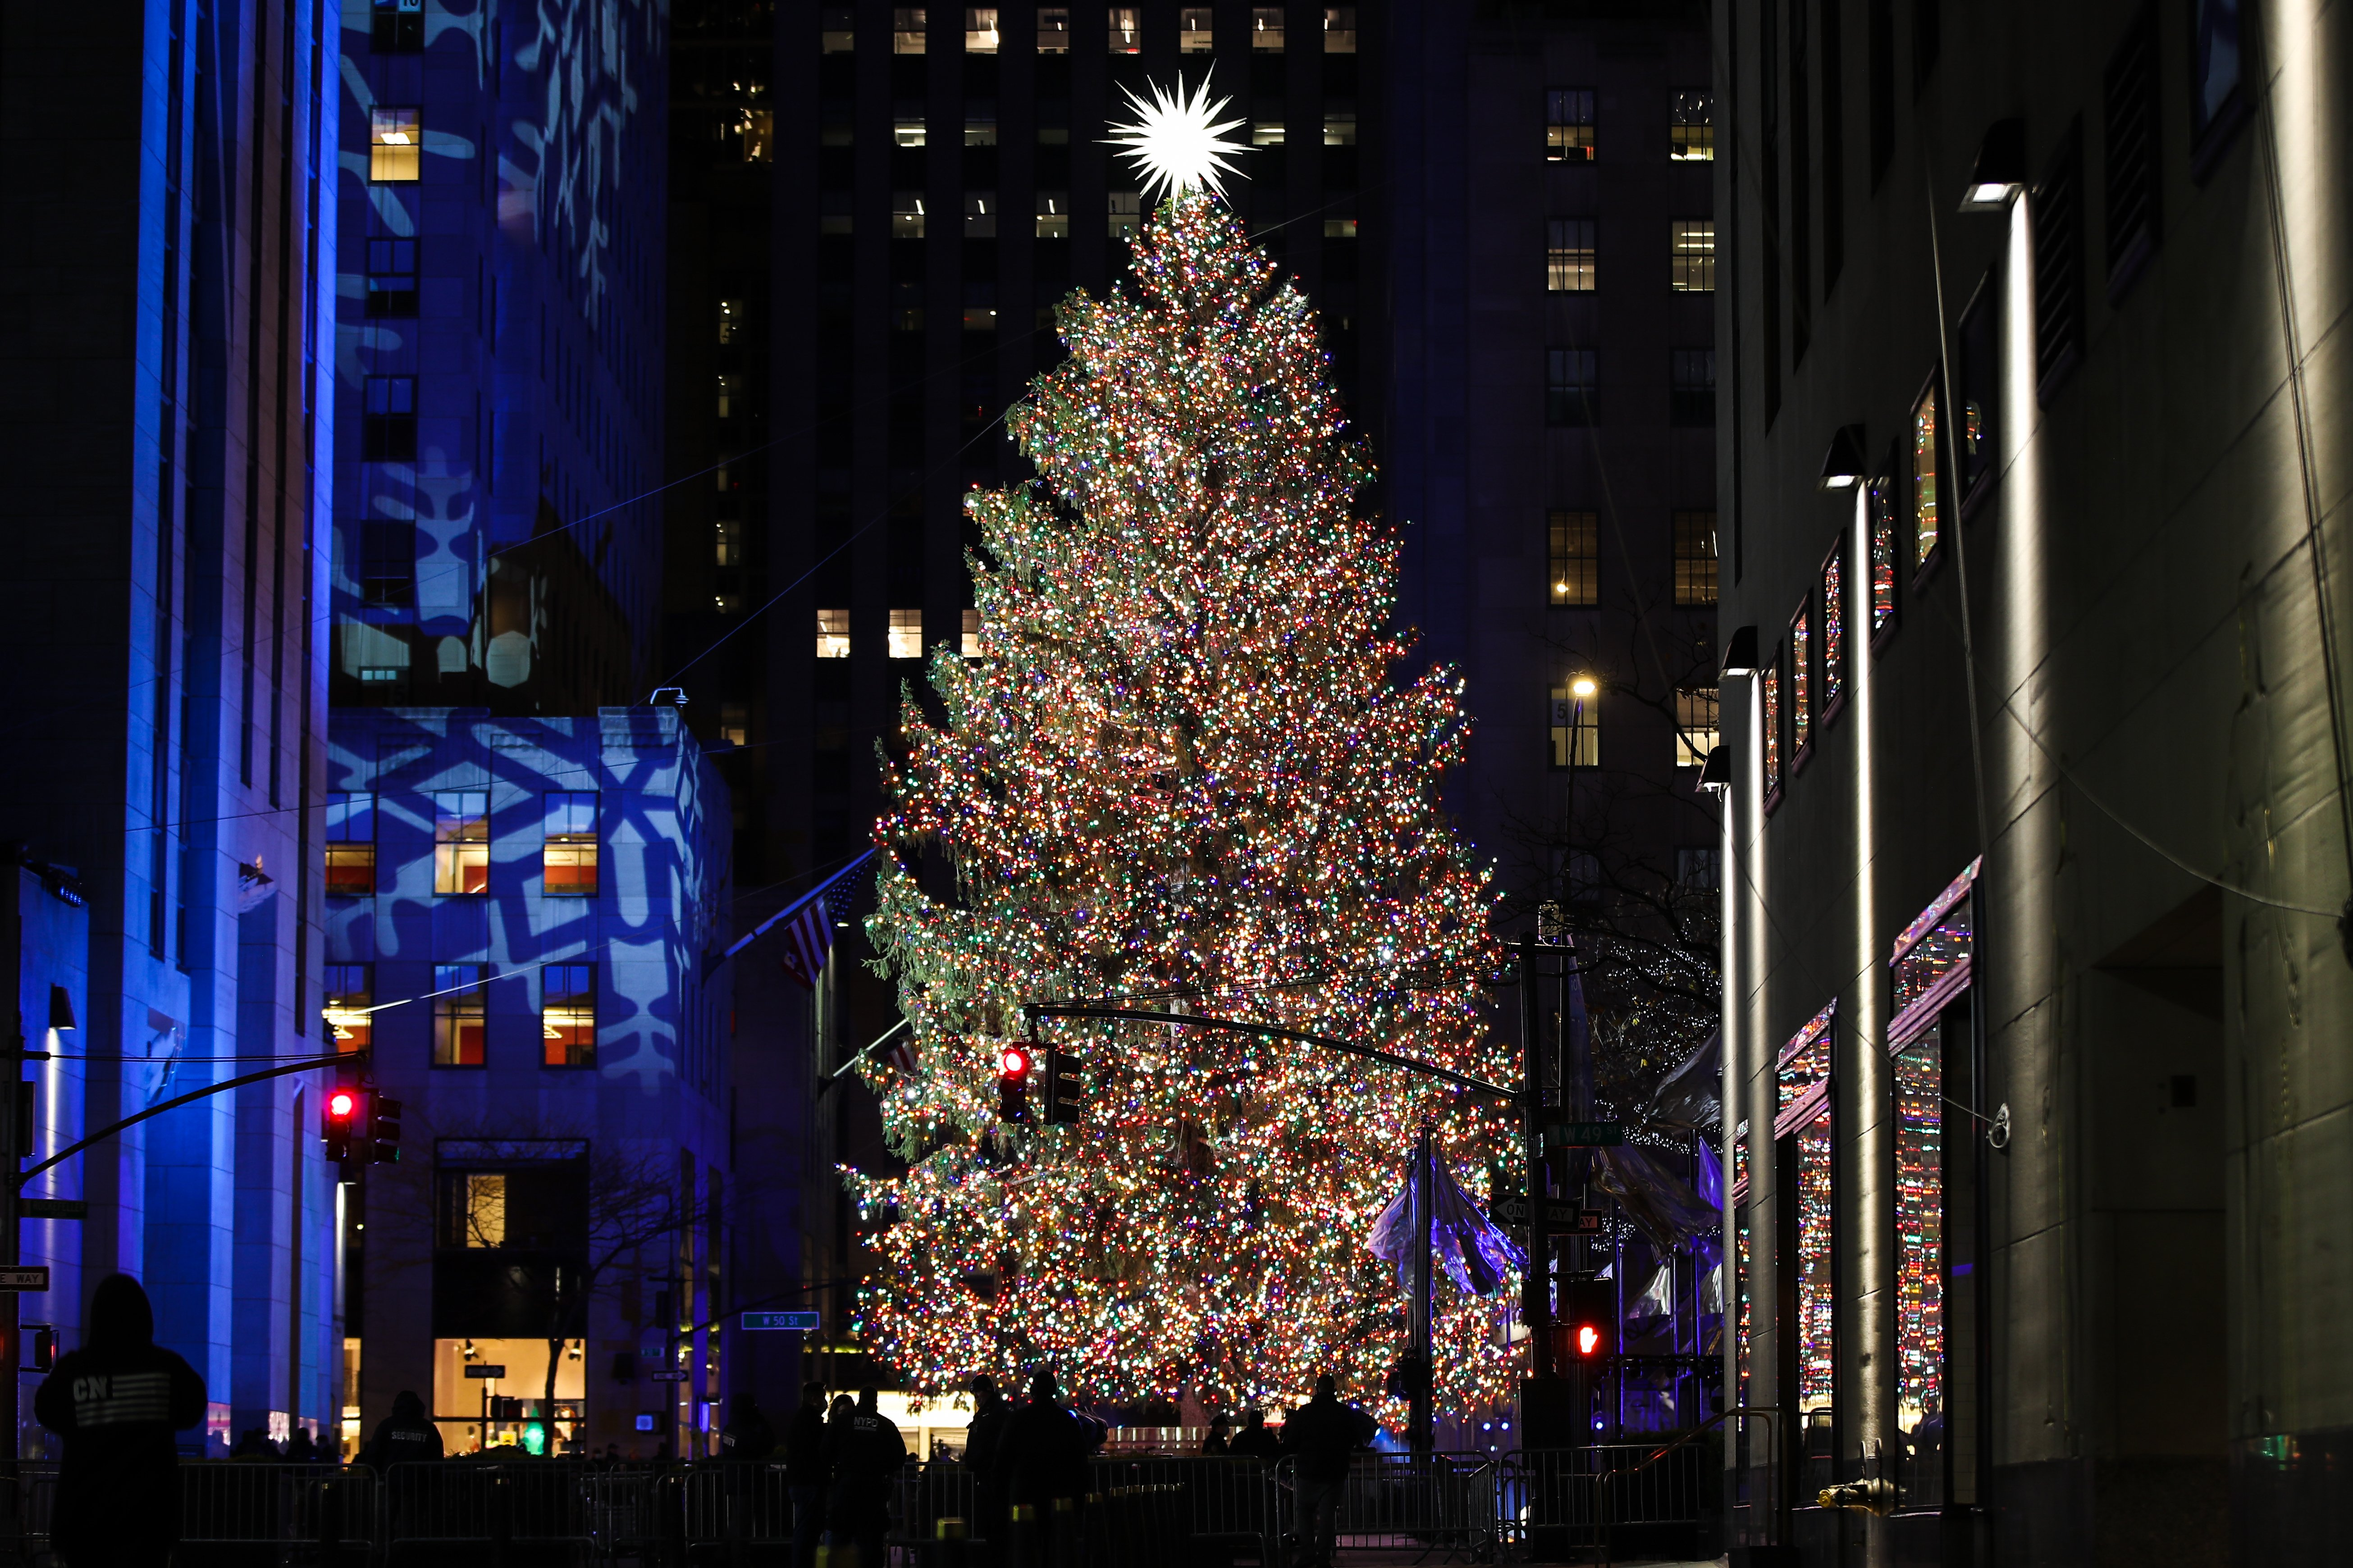 A view of the Rockefeller Center Christmas Tree during the 88th Annual Rockefeller Center Christmas Tree Lighting Ceremony in New York City, United States on December 2, 2020. | Source: Getty Images.